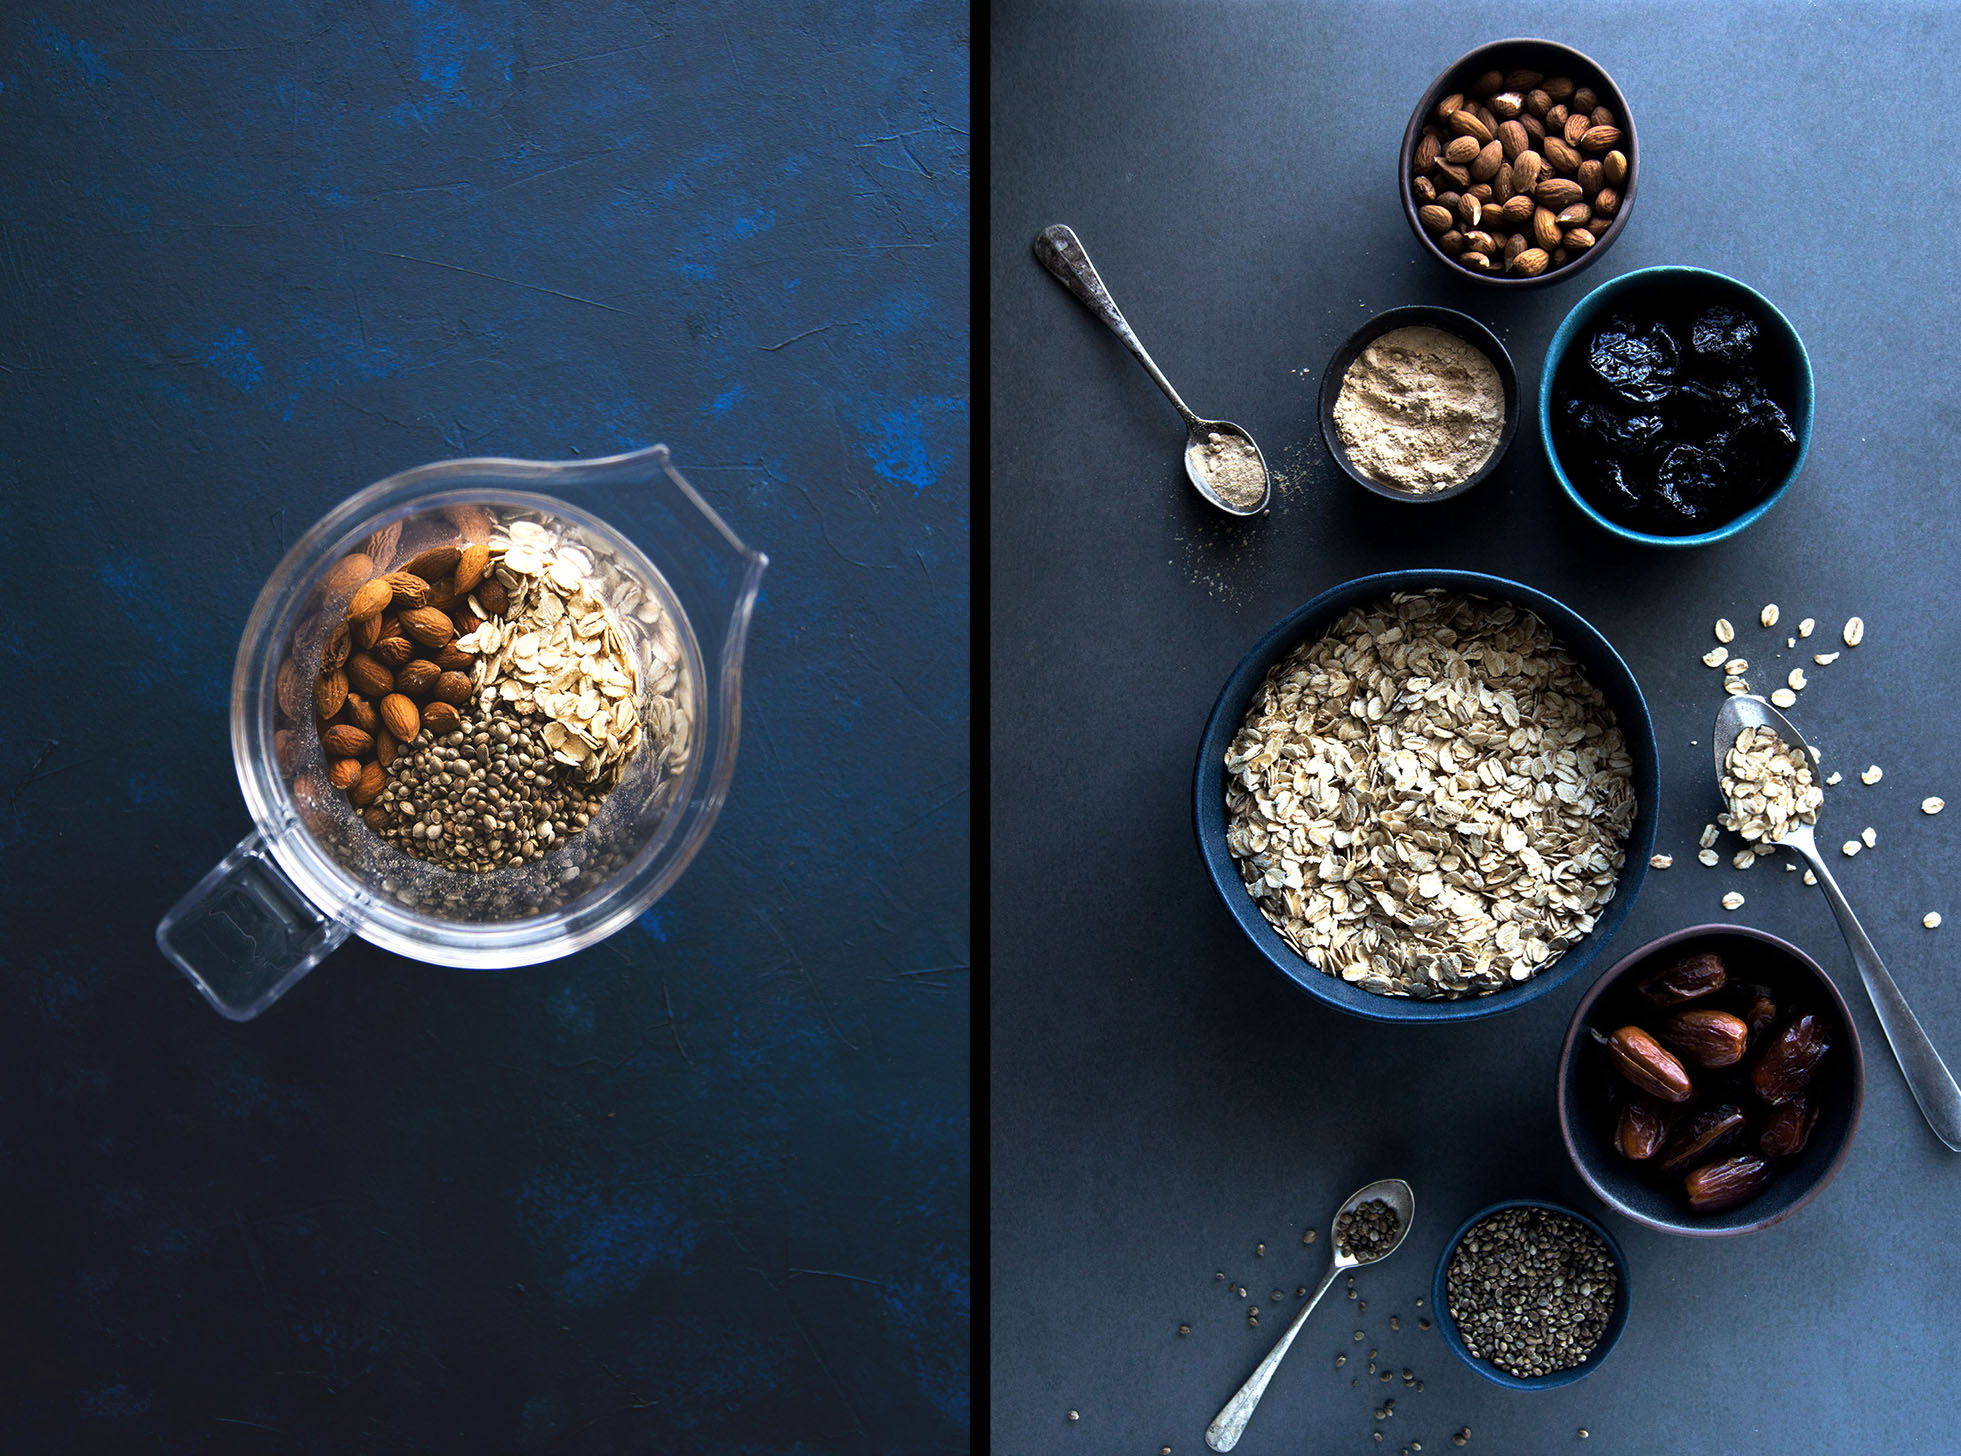 Ingredients for the Superfood Energy Bliss Balls